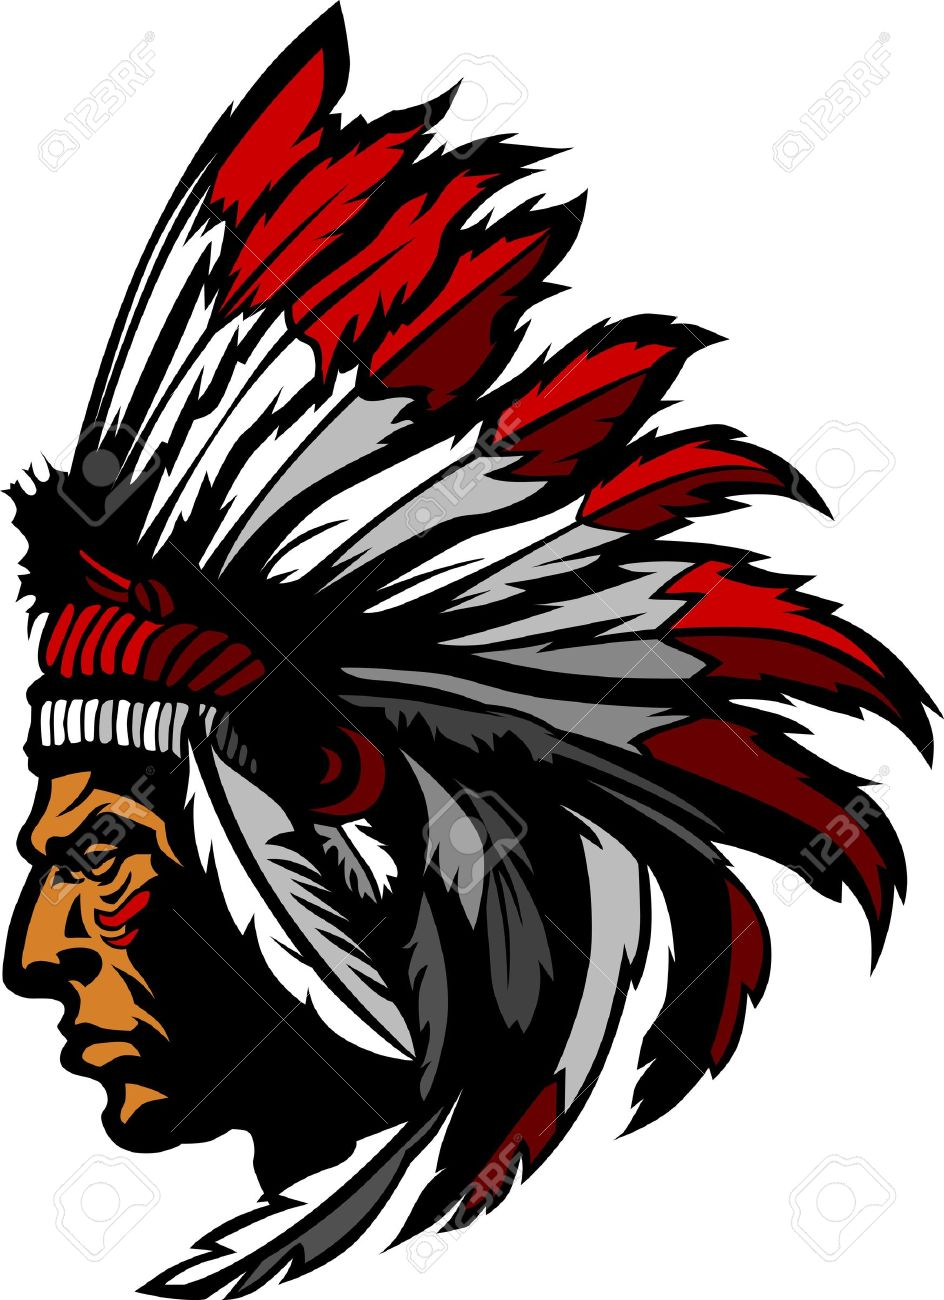 Indian Chief Mascot Head Graphic.